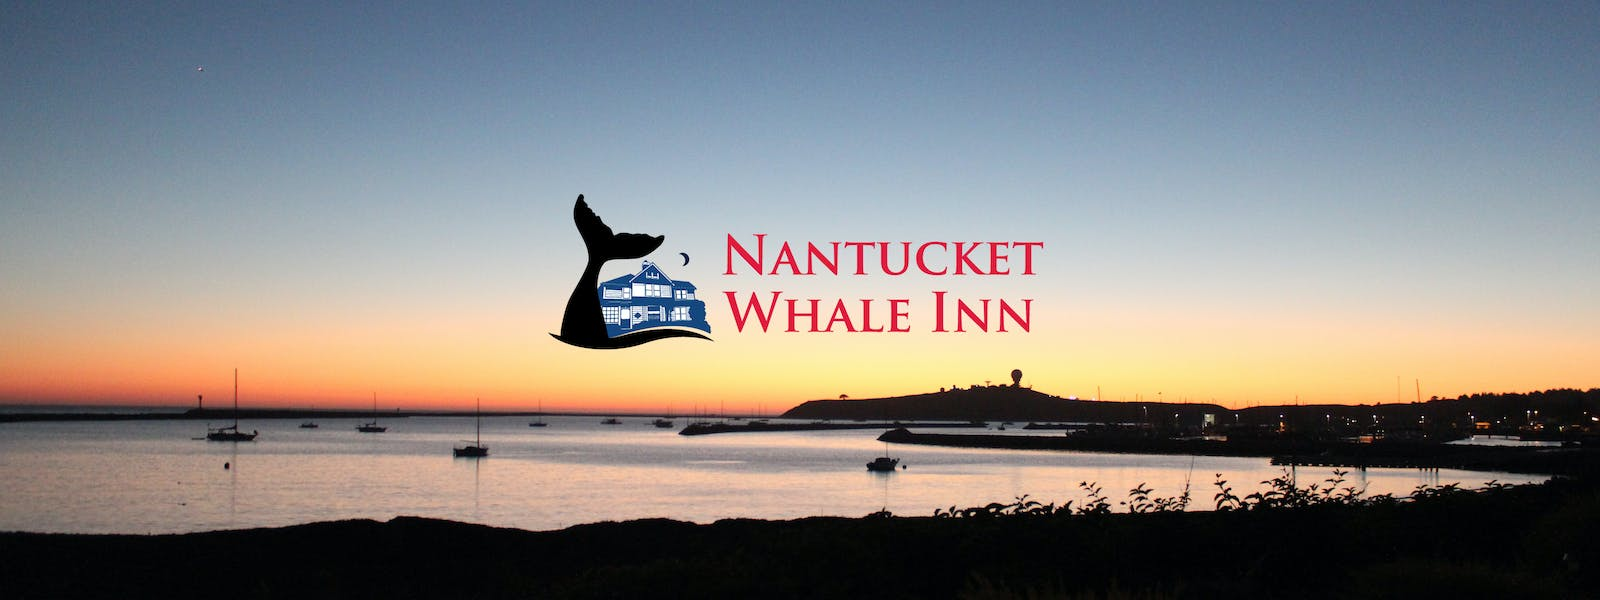 Nantucket Whale Inn logo over Pillar Point Harbor sunset